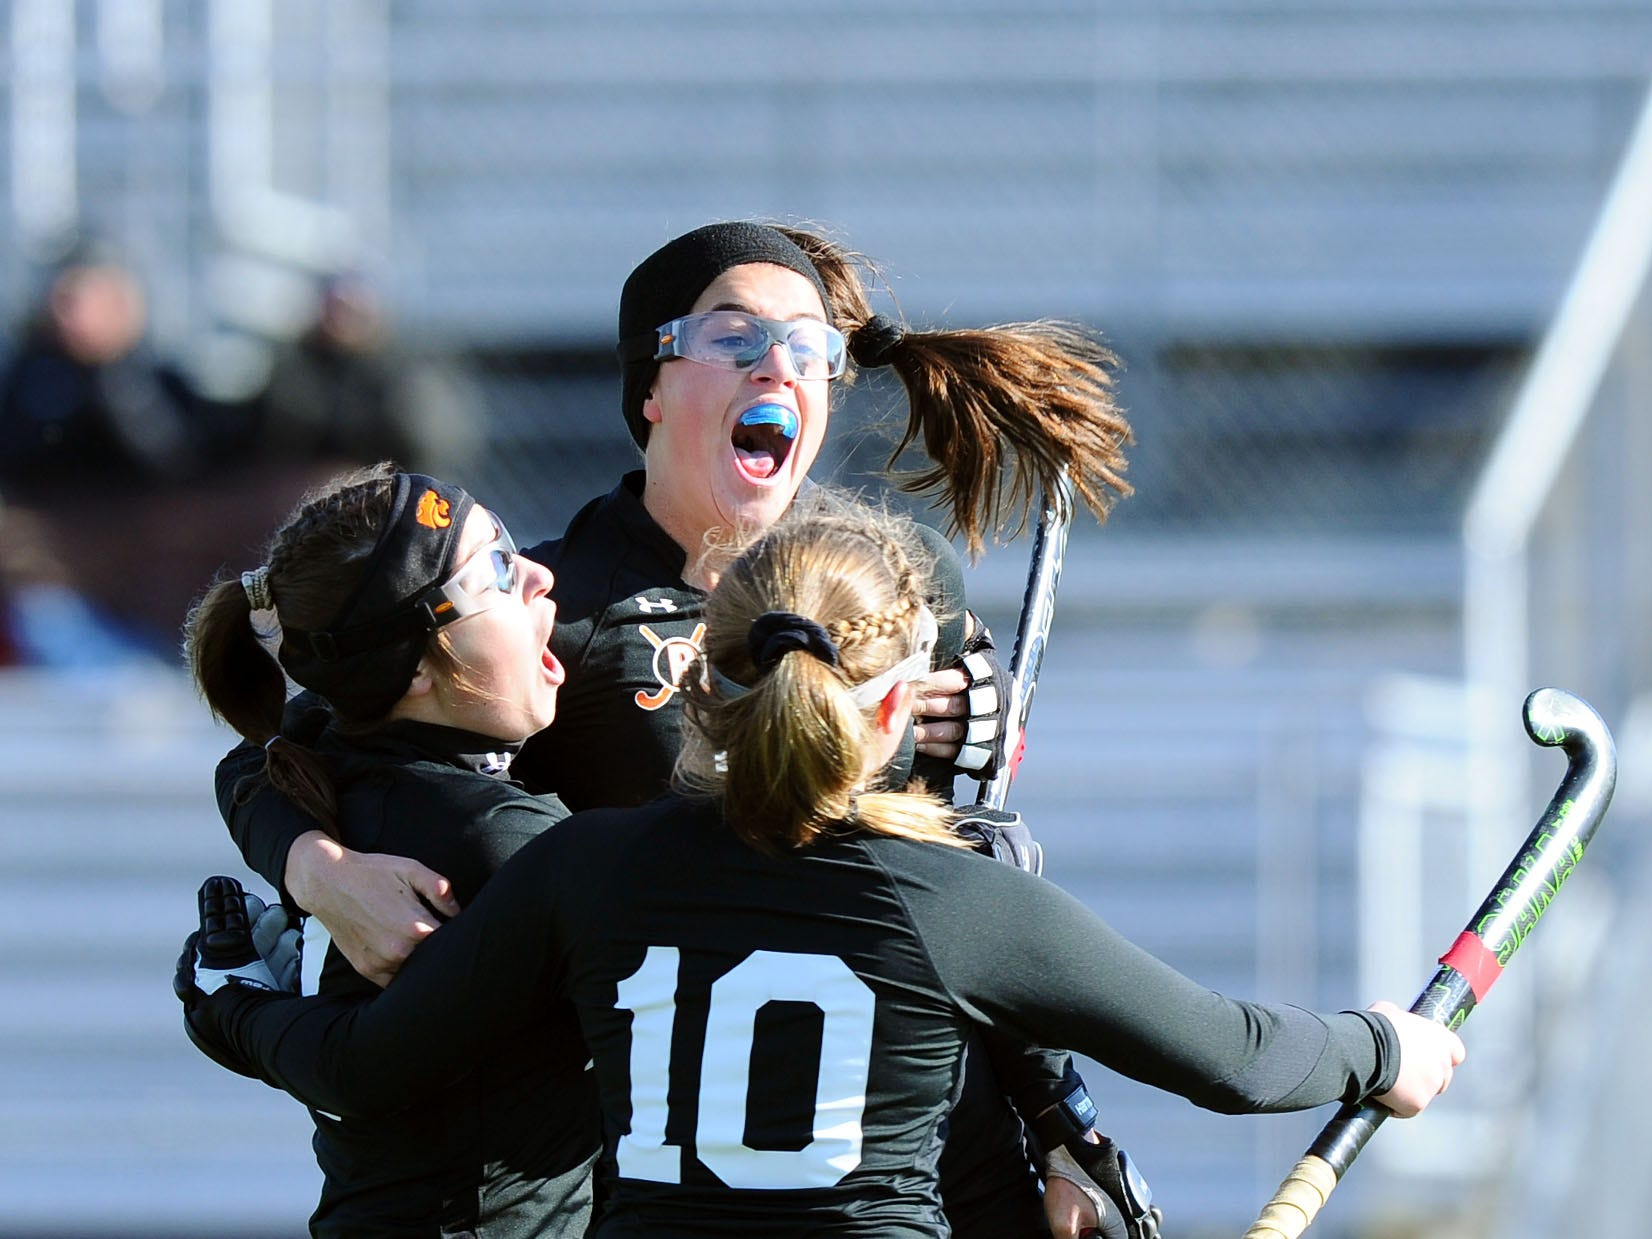 Palmyra's Mia Julian(18) is lifted into the air after scoring the game-winning goal in OT by her teammates Lauren Wadas (21) and Alexa Derr (10).